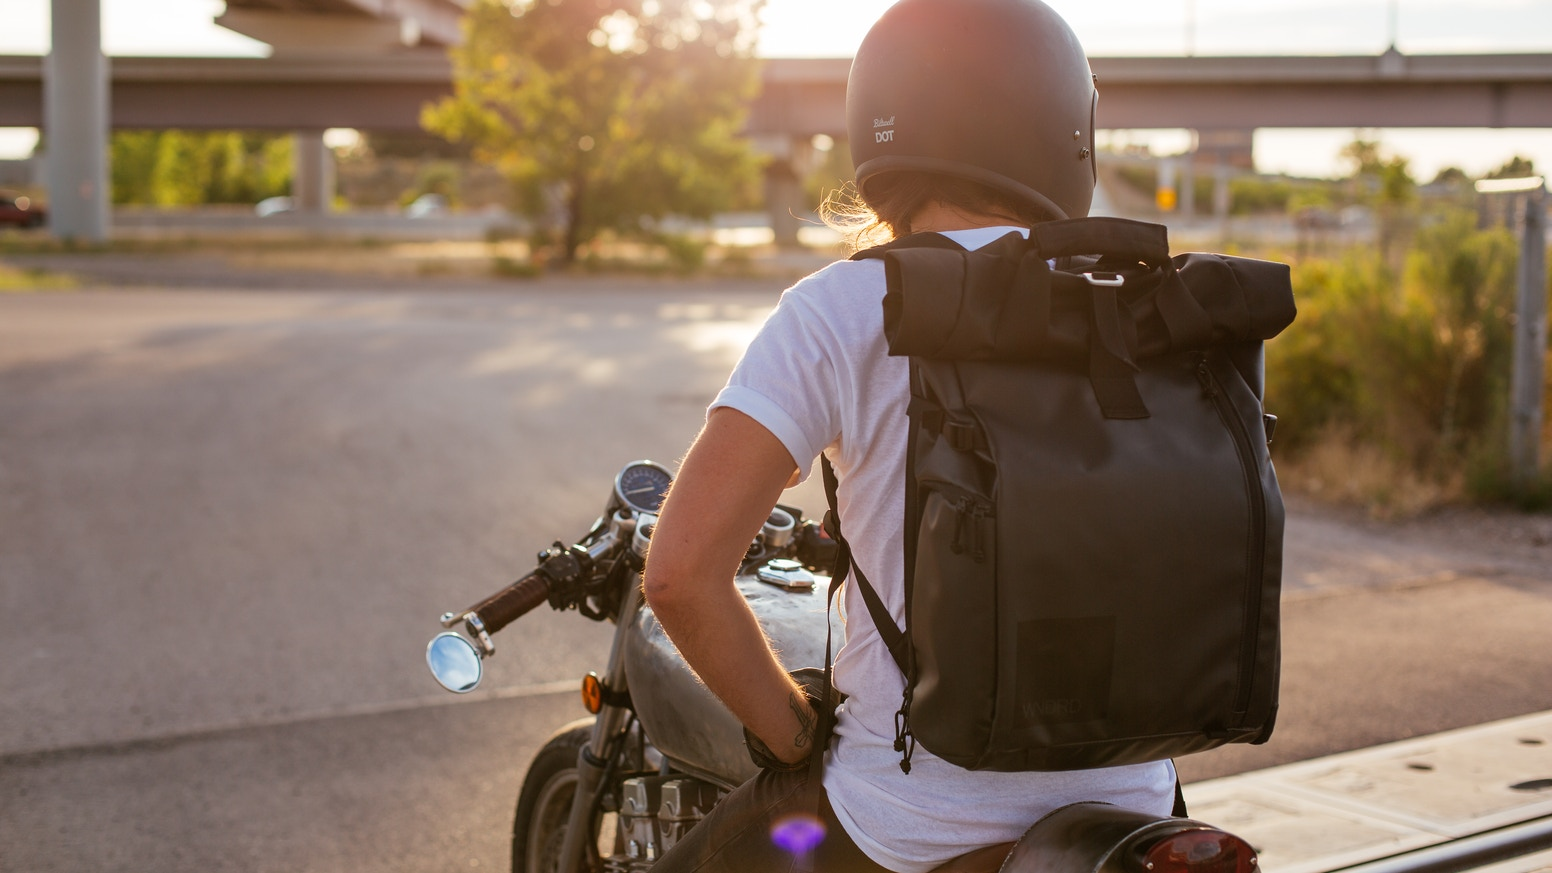 A travel/photography backpack designed so your attention is focused on where you are and not what you're carrying.